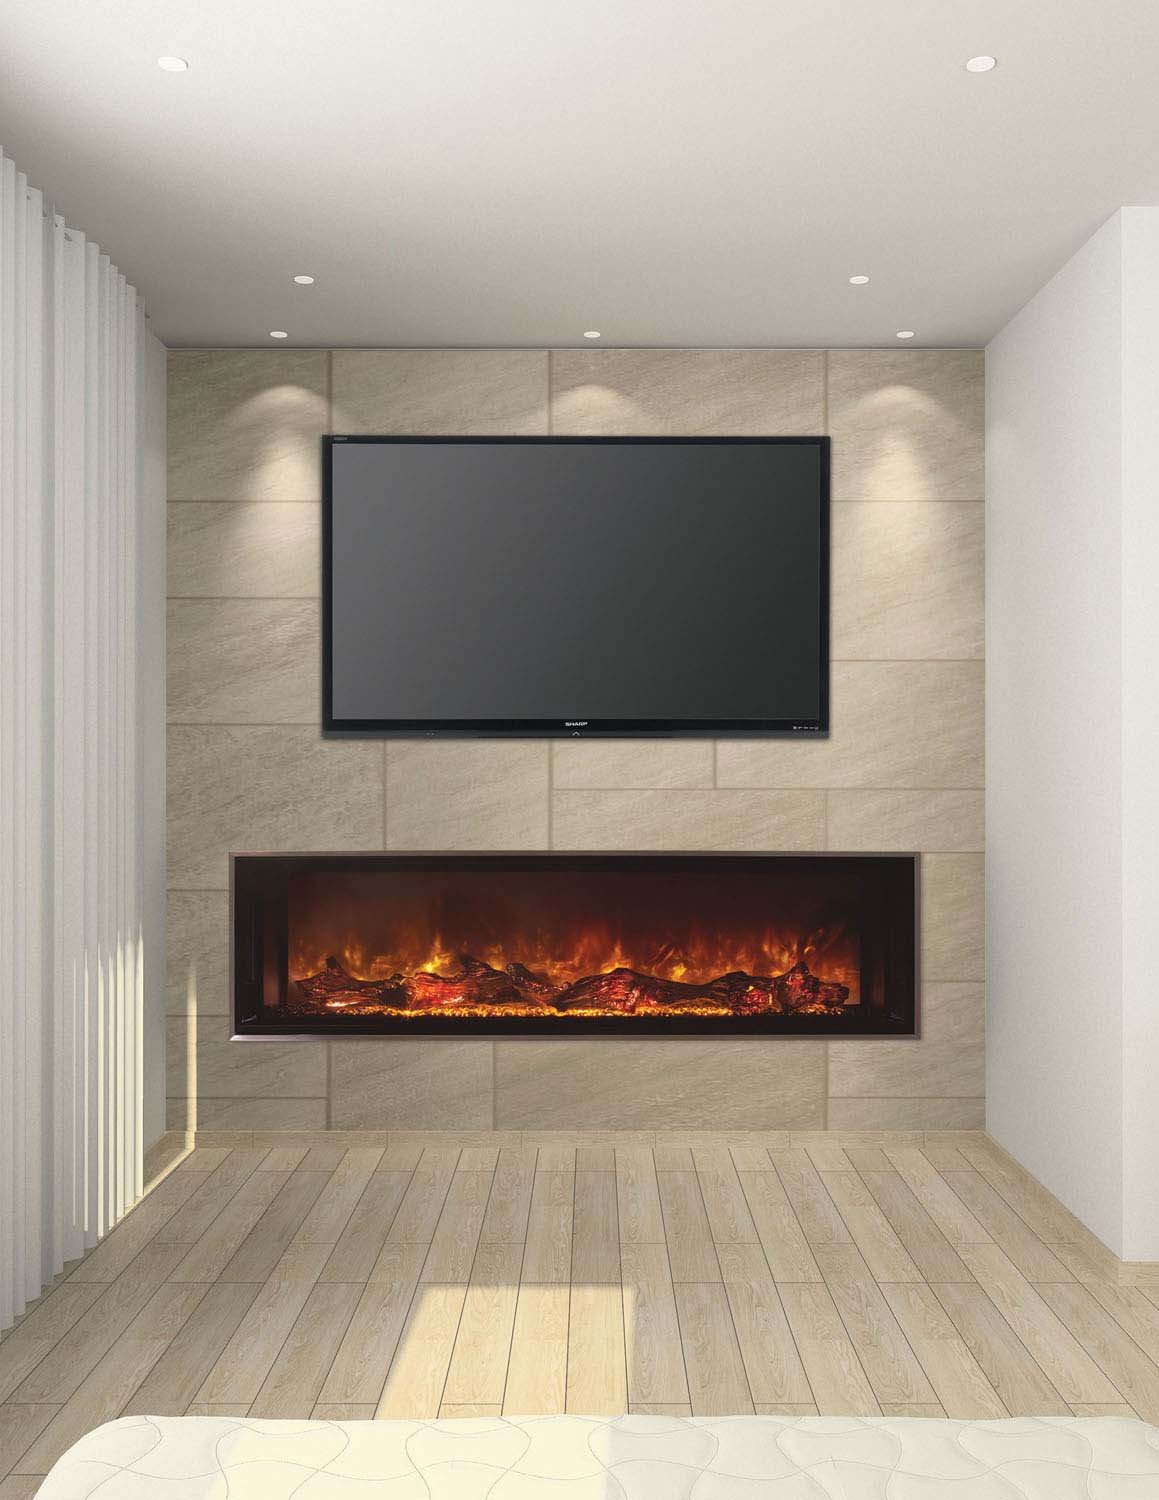 Amazon.com: Landscape FullView Series Electric Fireplace Size ...